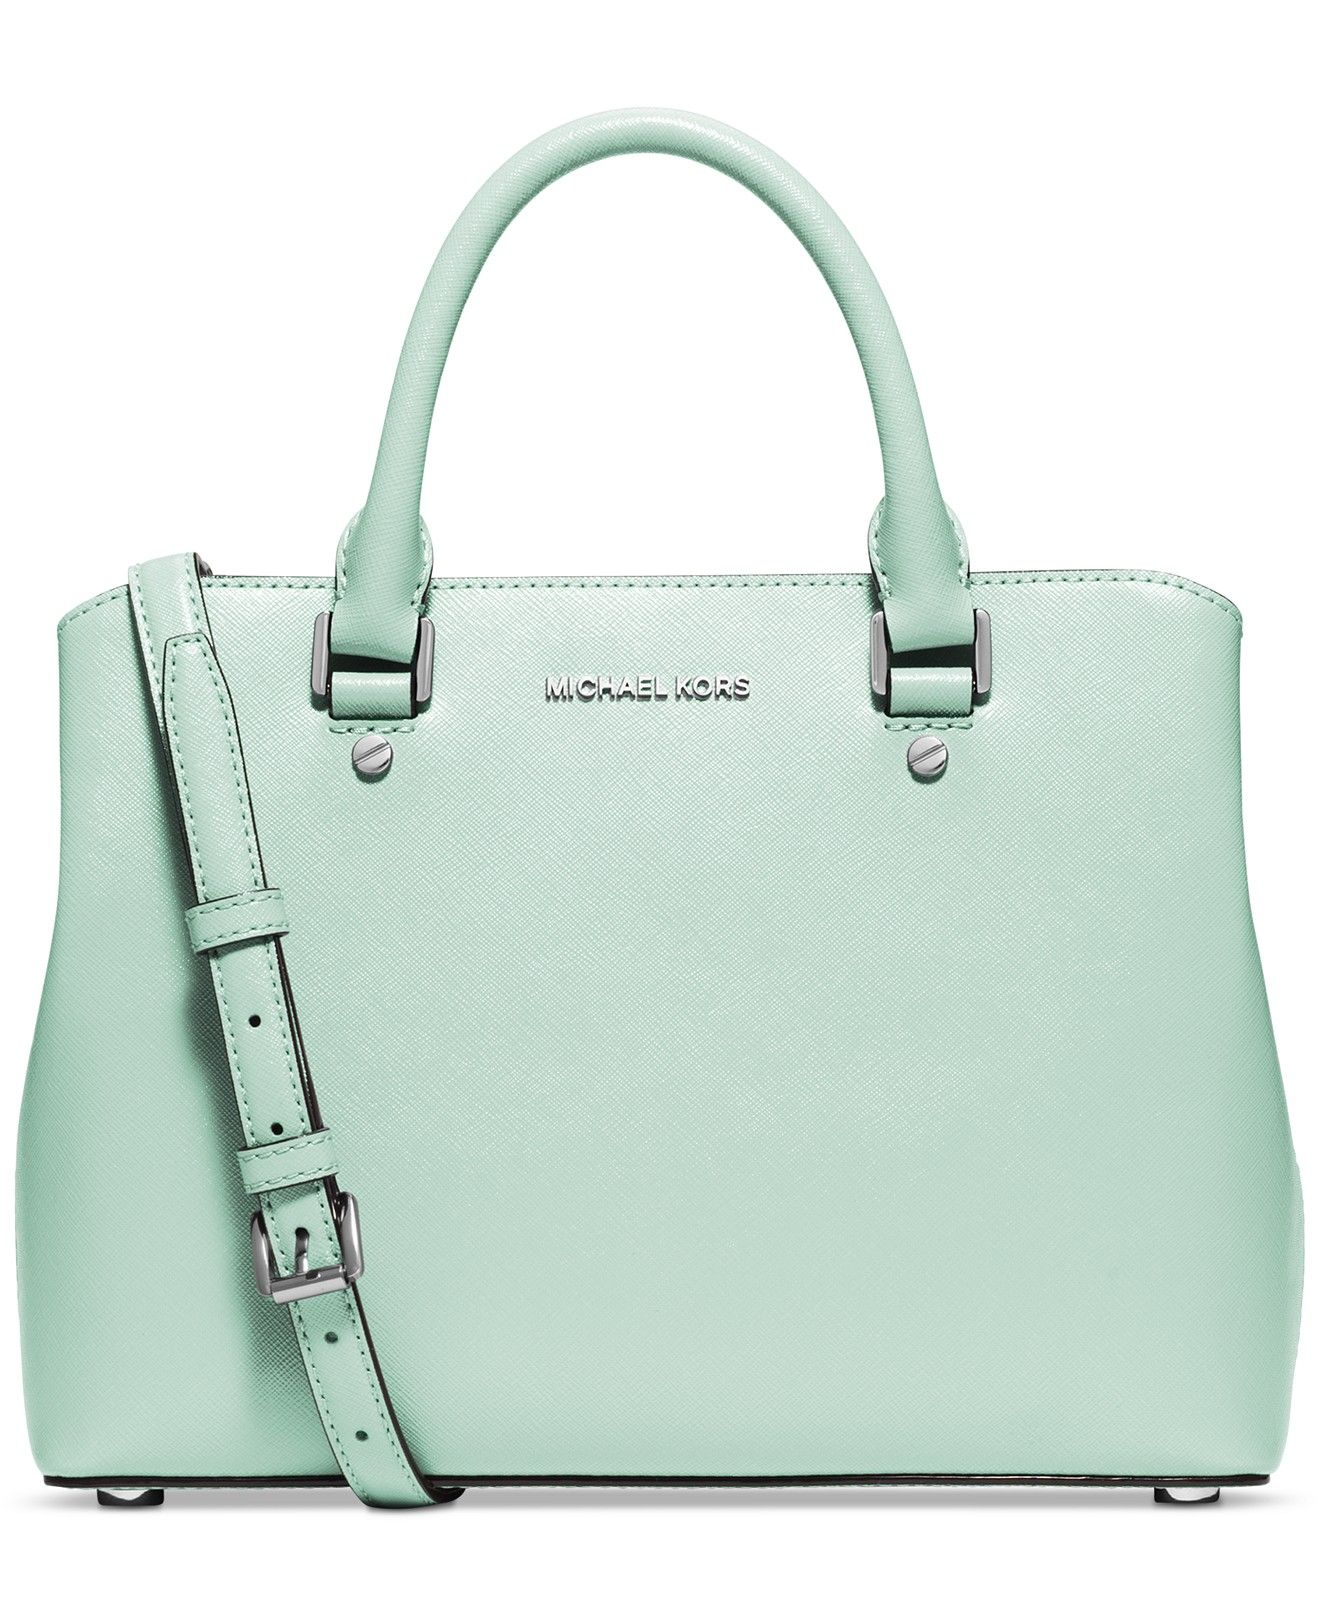 32a1a5e42719 MICHAEL Michael Kors Savannah Medium Satchel - MICHAEL Michael Kors -  Handbags   Accessories - Macy s